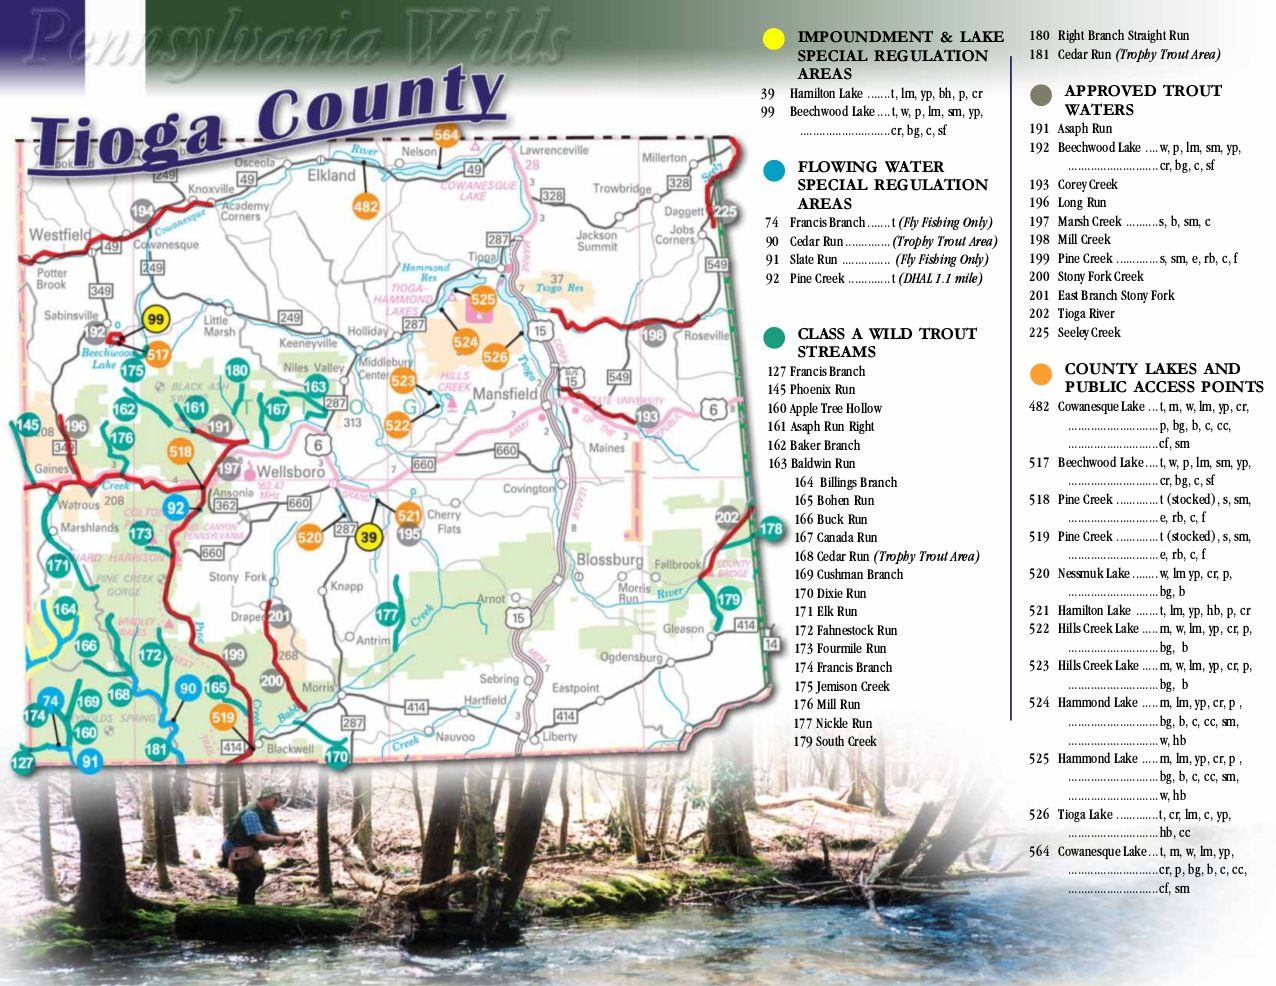 Visit Potter-TIoga Fishing Map